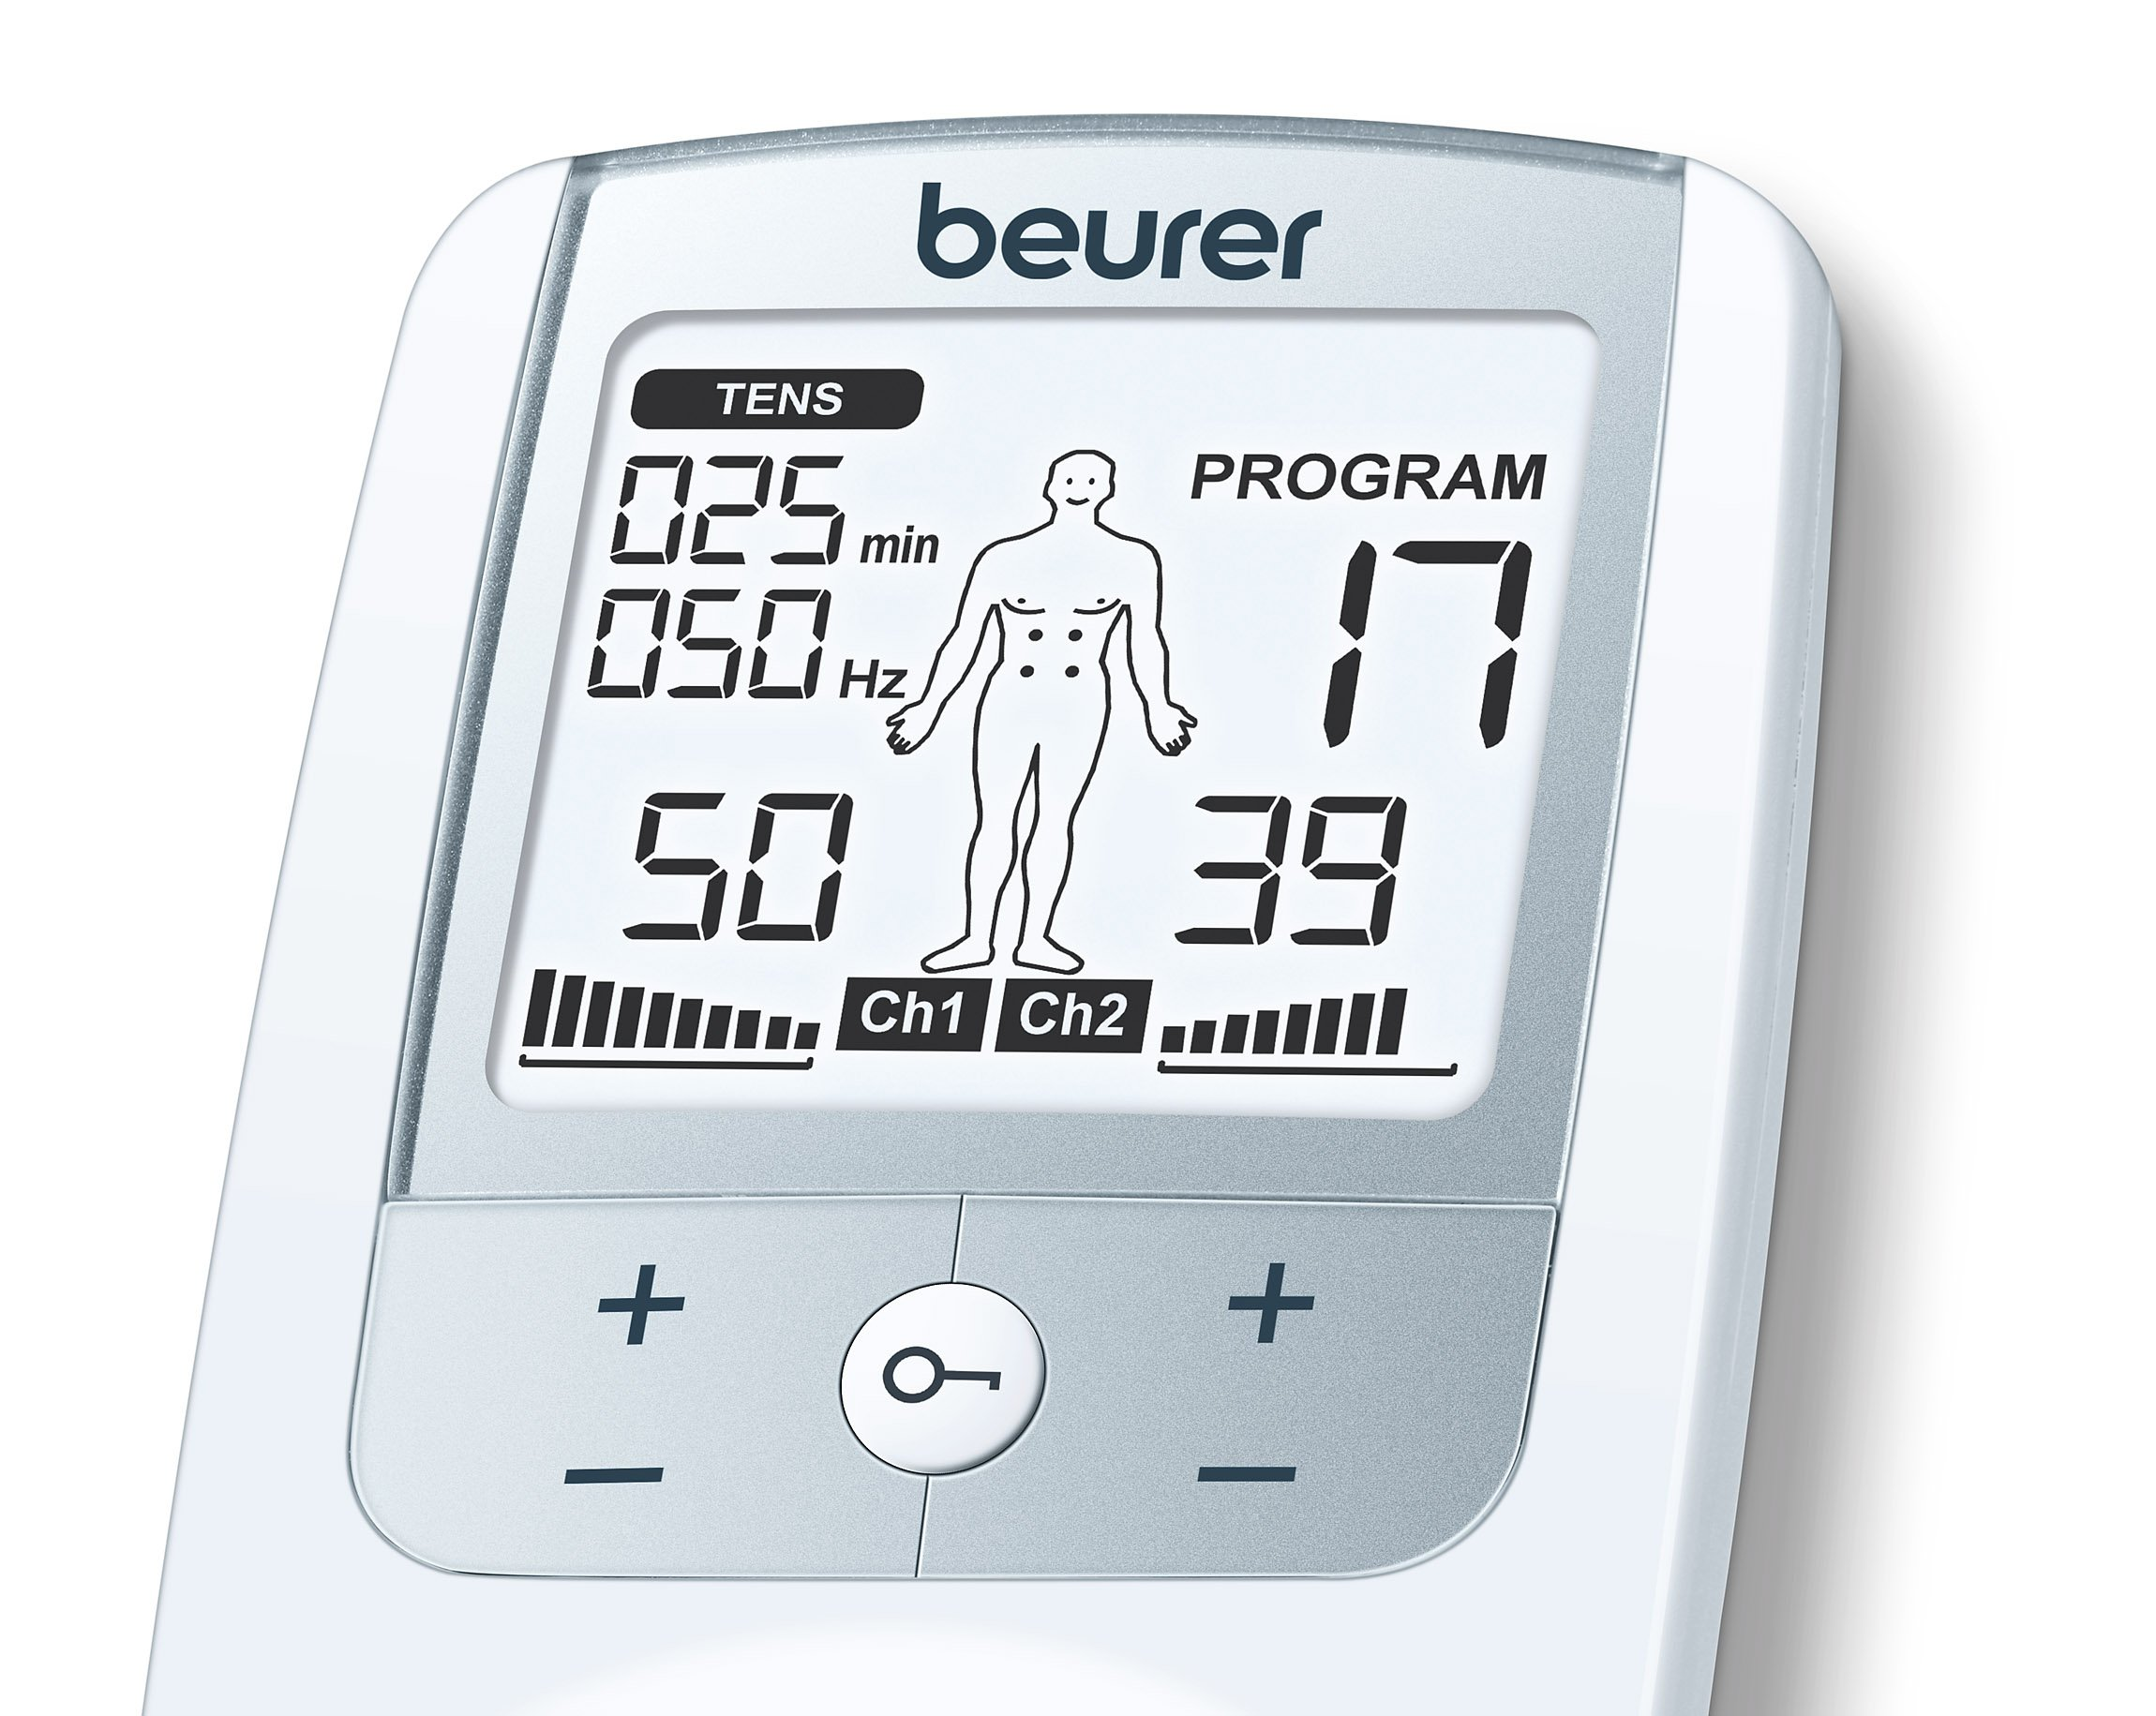 Beurer Digital Electrostimulation Tens Device, Muscle Stimulator for Pain Management by Beurer North America (Image #2)